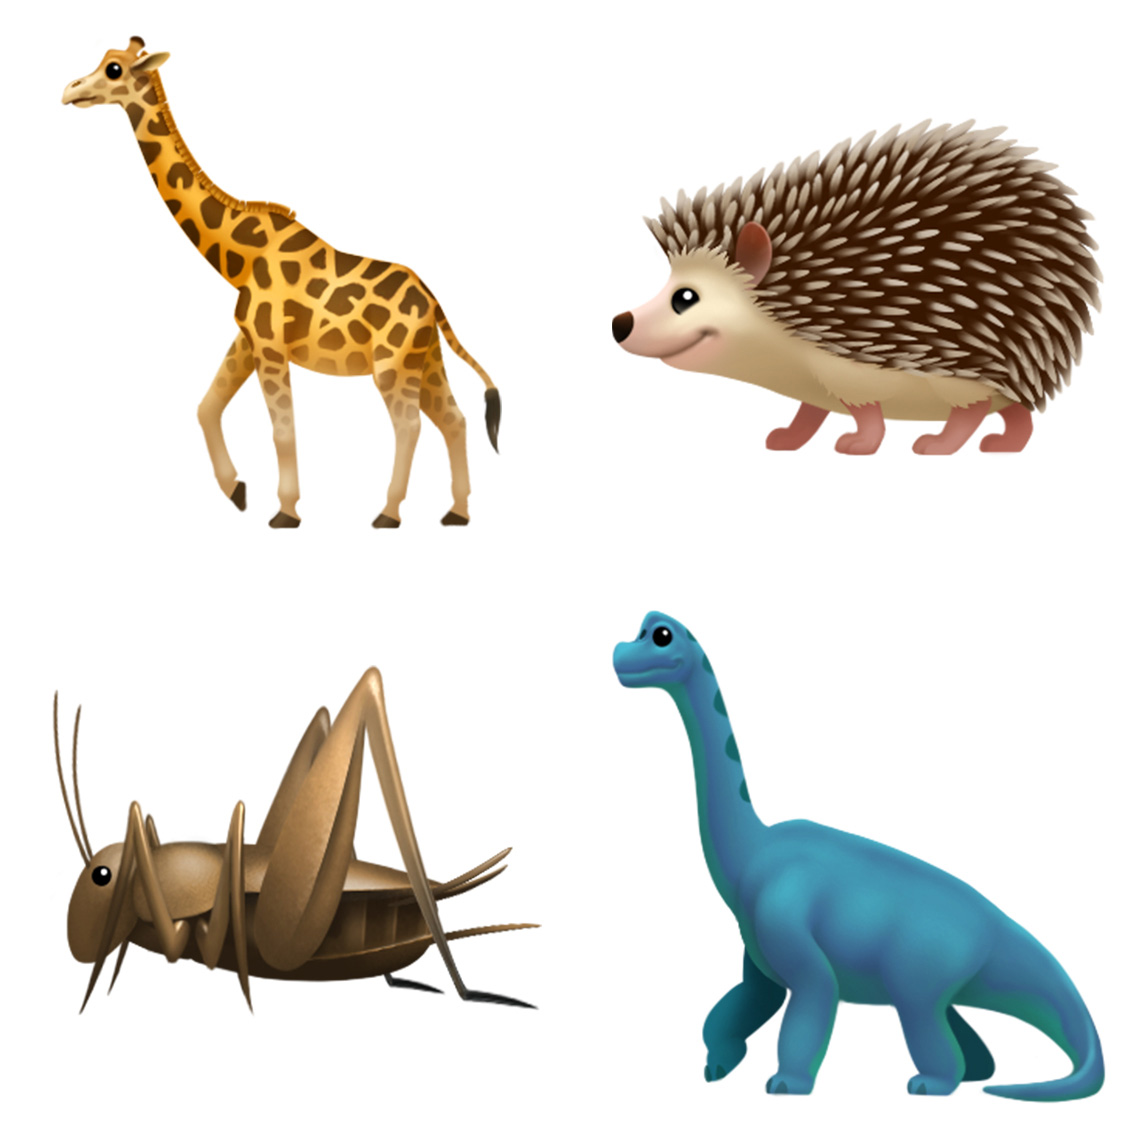 Apple iOS 11 emoji update 2017 animals